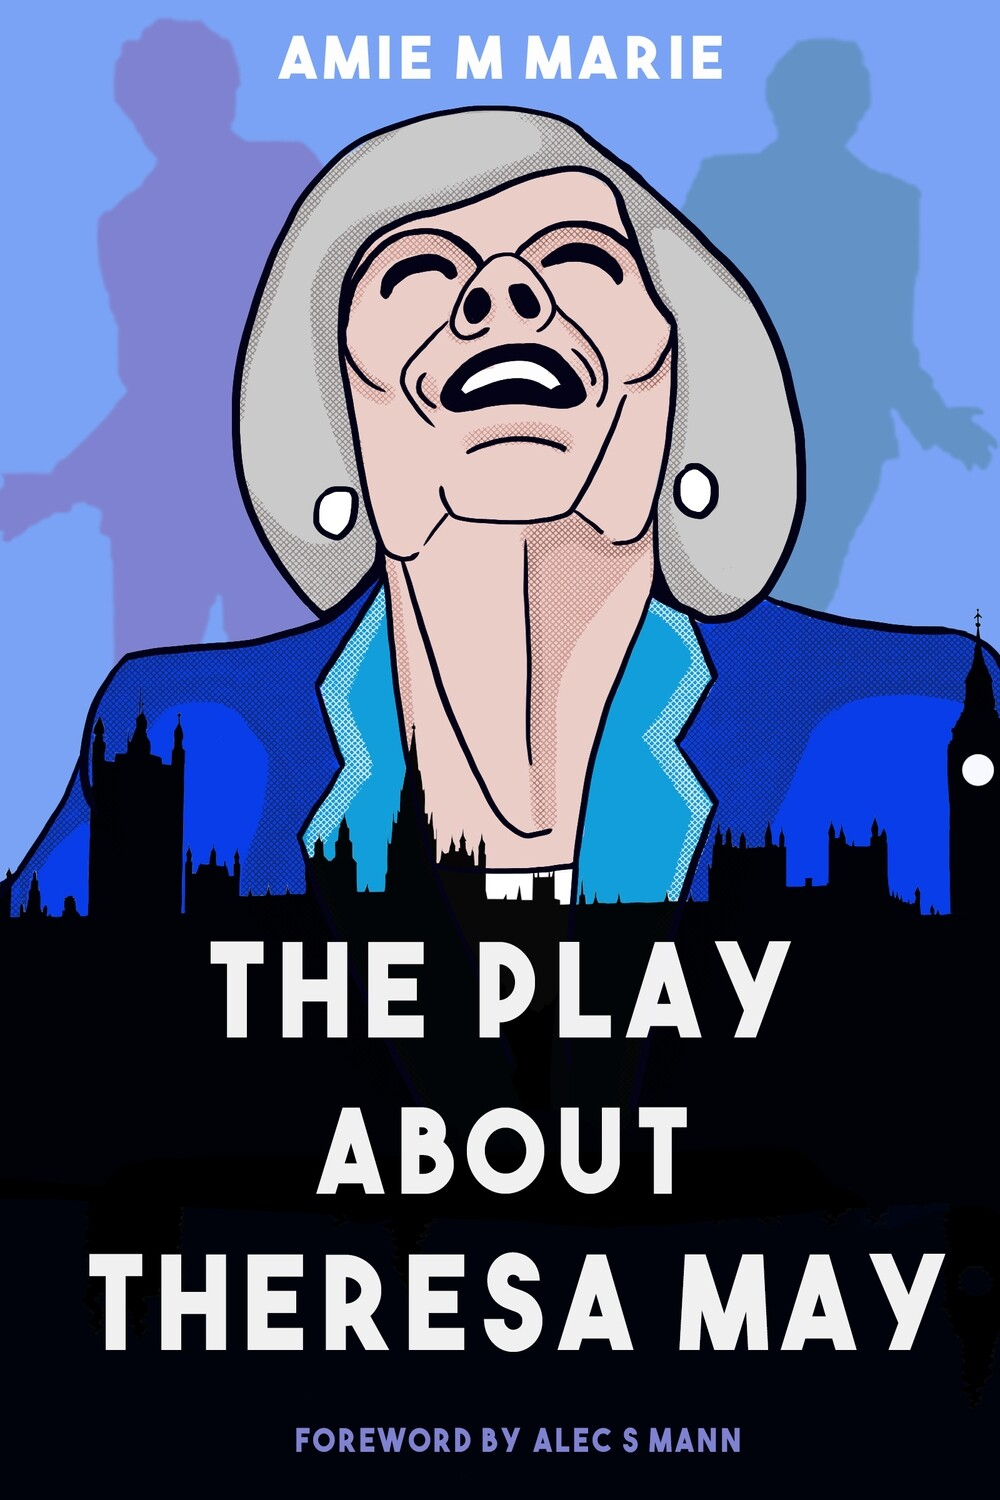 PDF: The Play About Theresa May